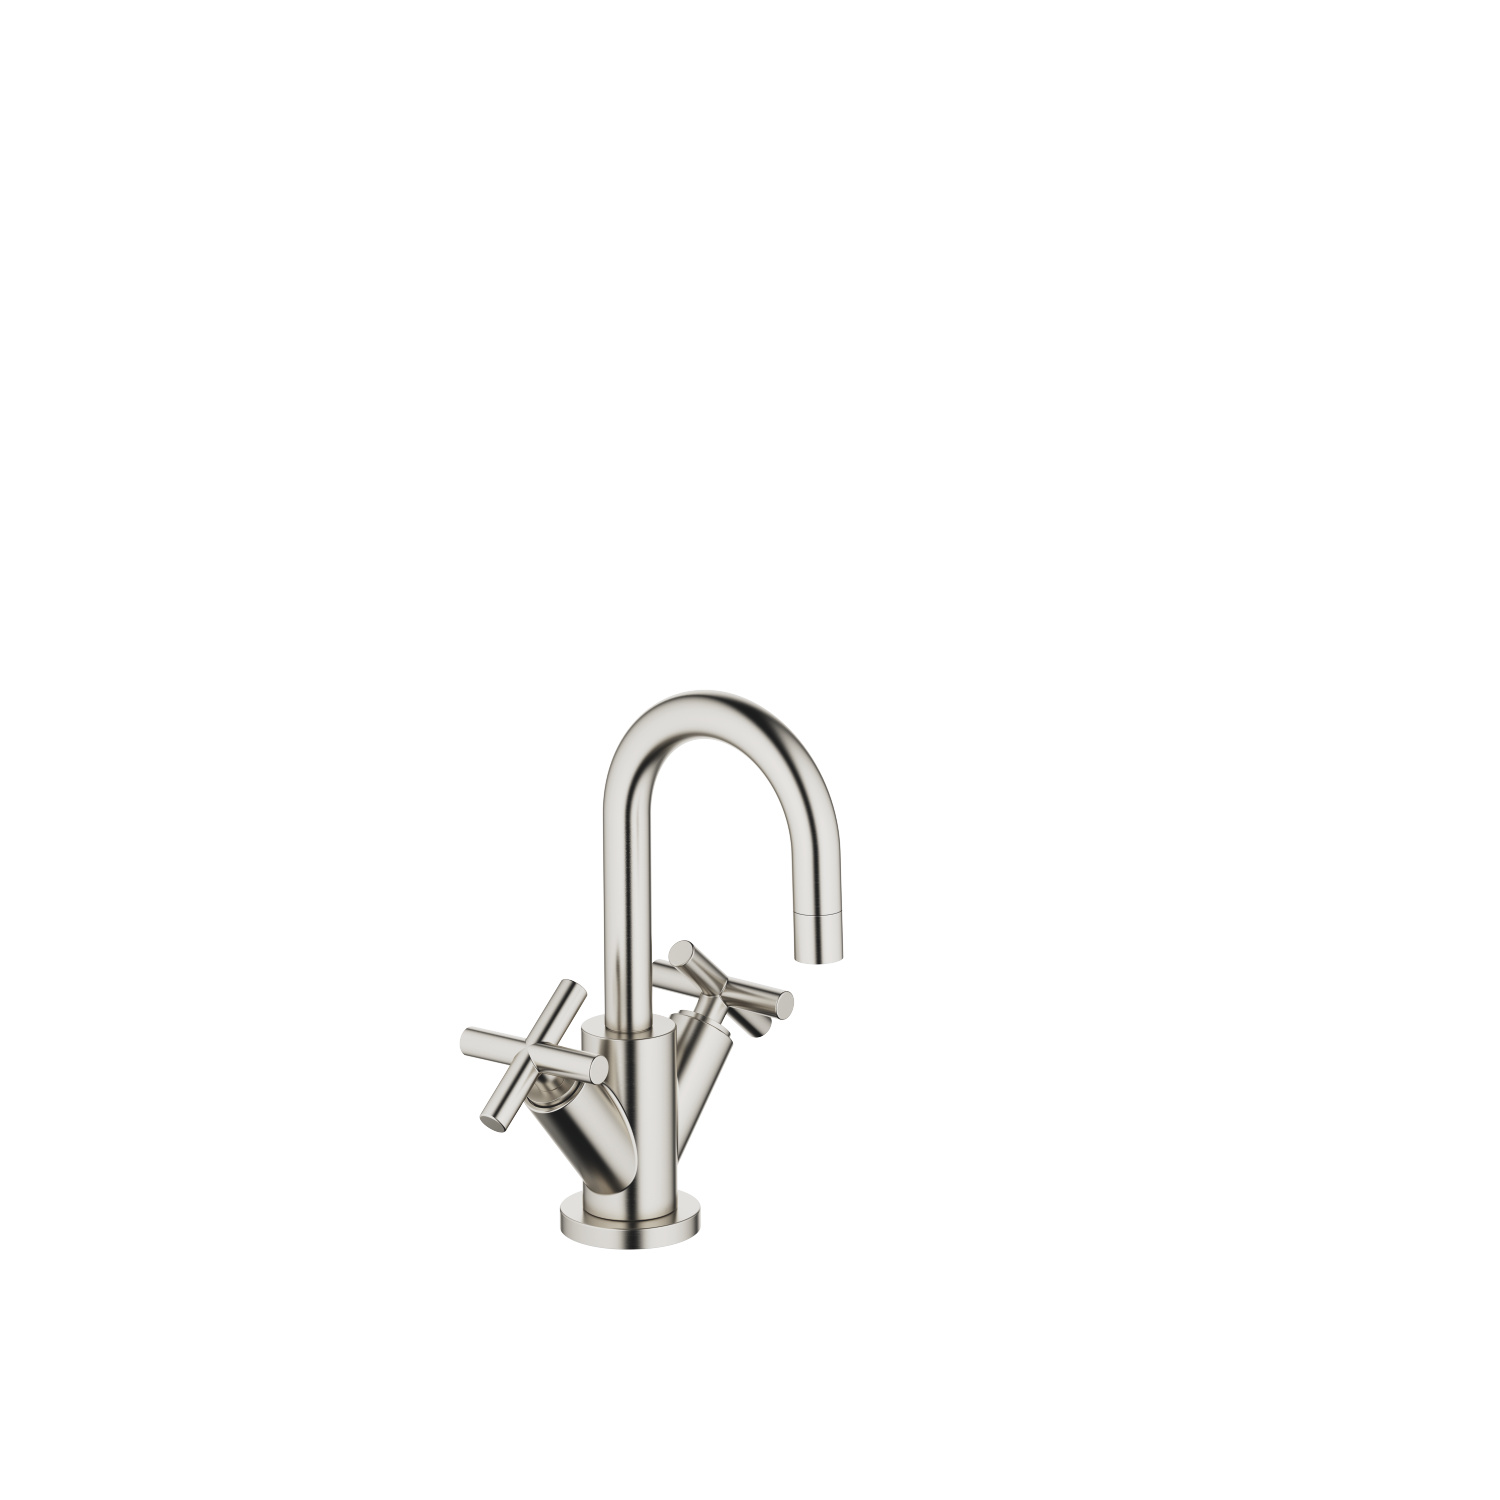 Single-hole basin mixer with pop-up waste - platinum matt - 22 302 892-06